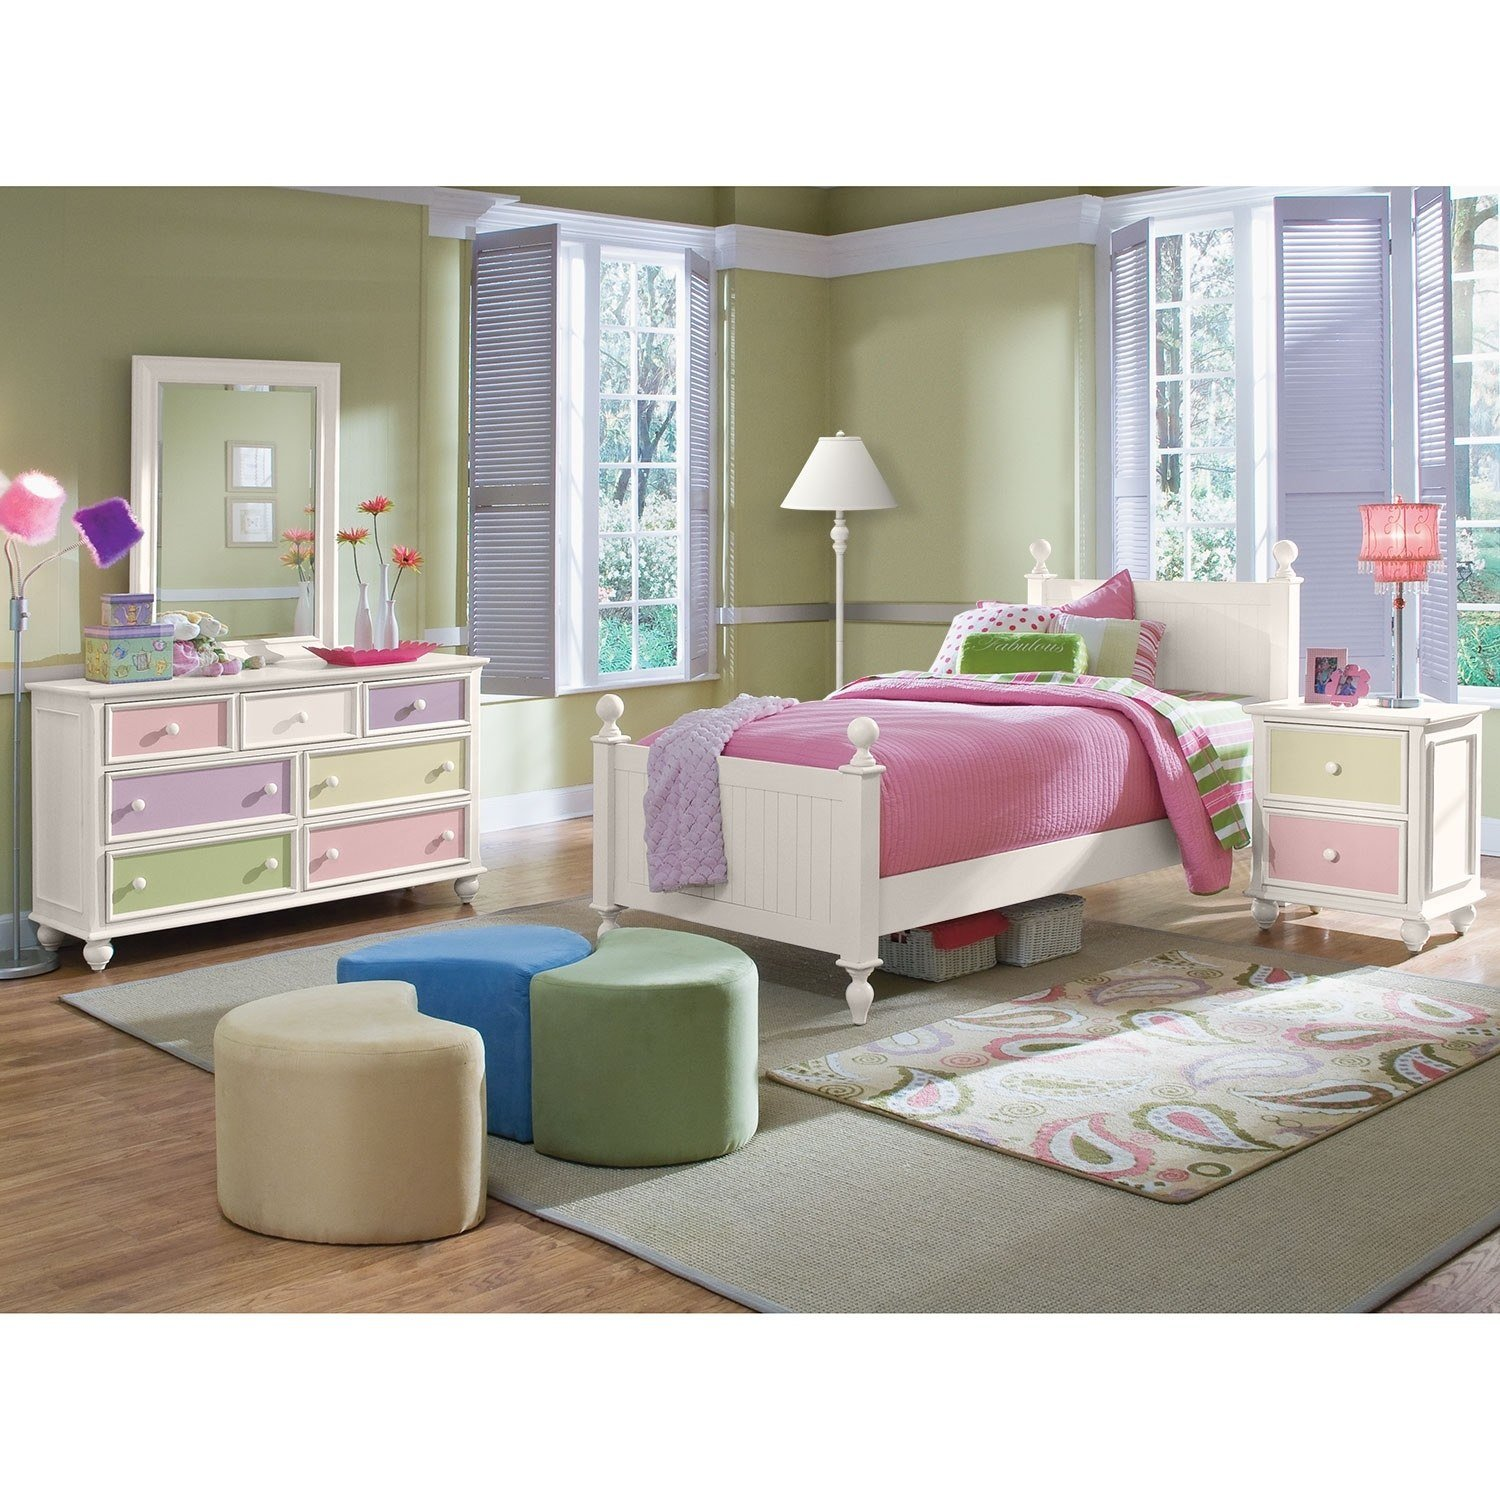 Best Colorworks 6 Piece Twin Bedroom Set White Value City With Pictures